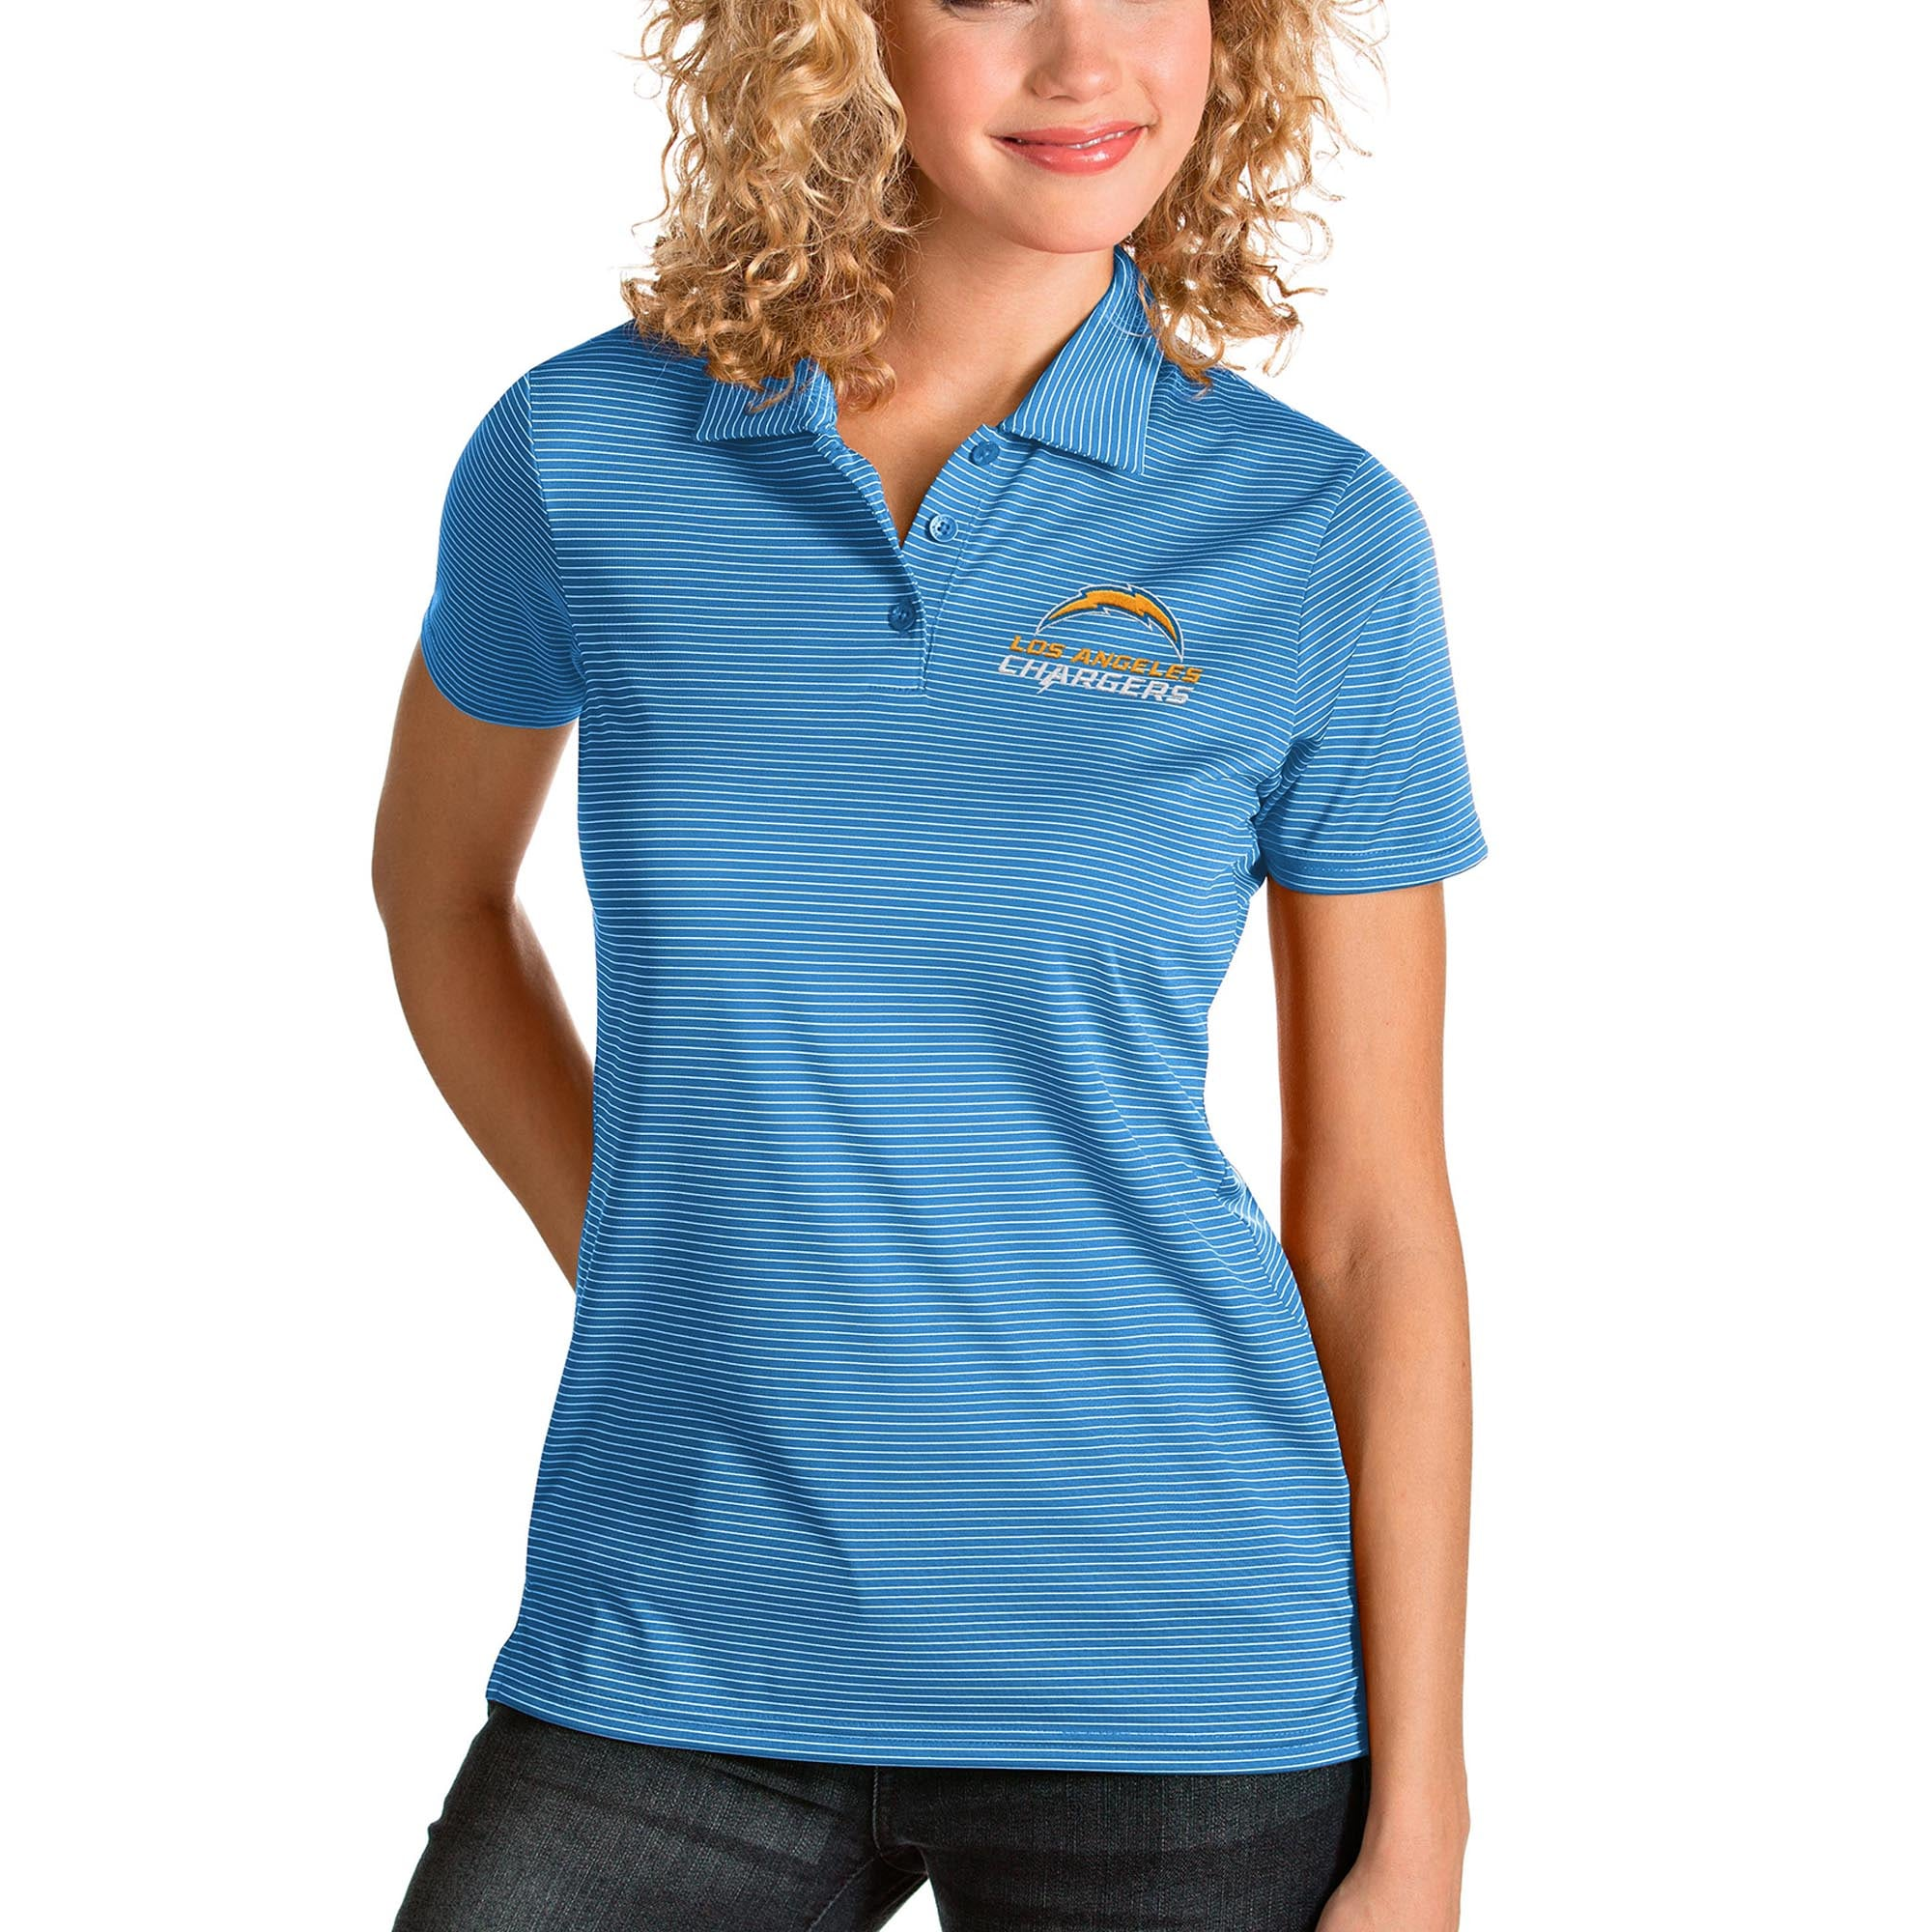 Los Angeles Chargers Antigua Women's Quest Polo - Blue